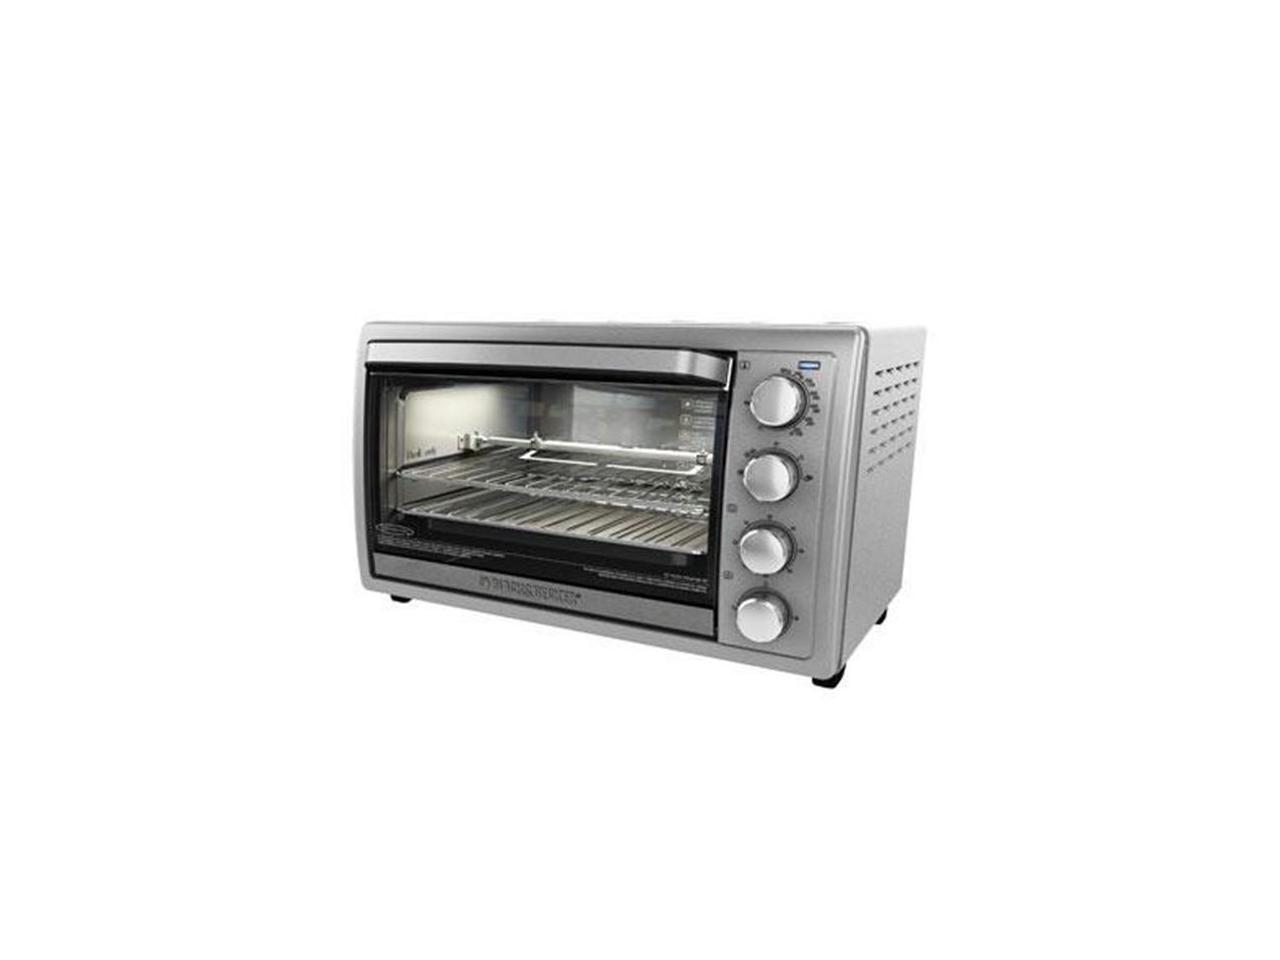 Applica To4314ssd Bd 9 Slice Rotisserie Convection Countertop Oven Stainless Newegg Com